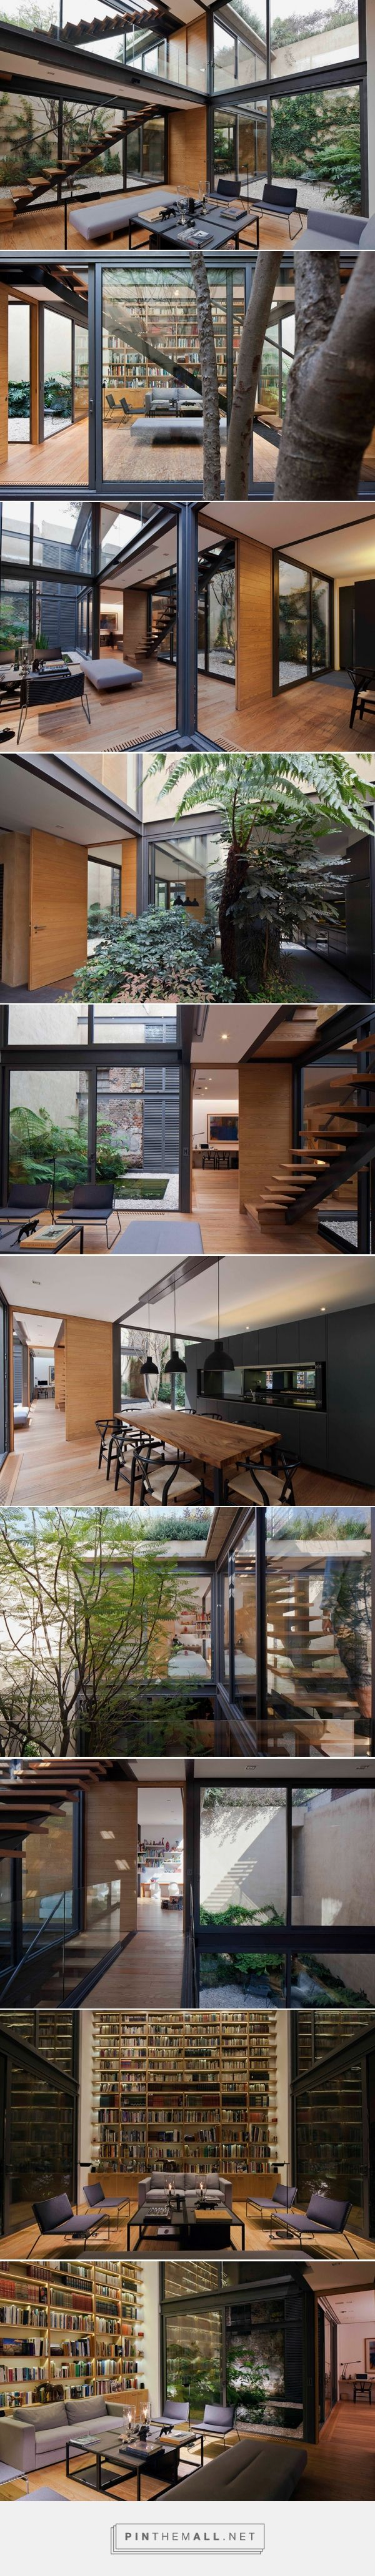 a house with four courtyards in mexico city by andrés stebelski - created via http://pinthemall.net